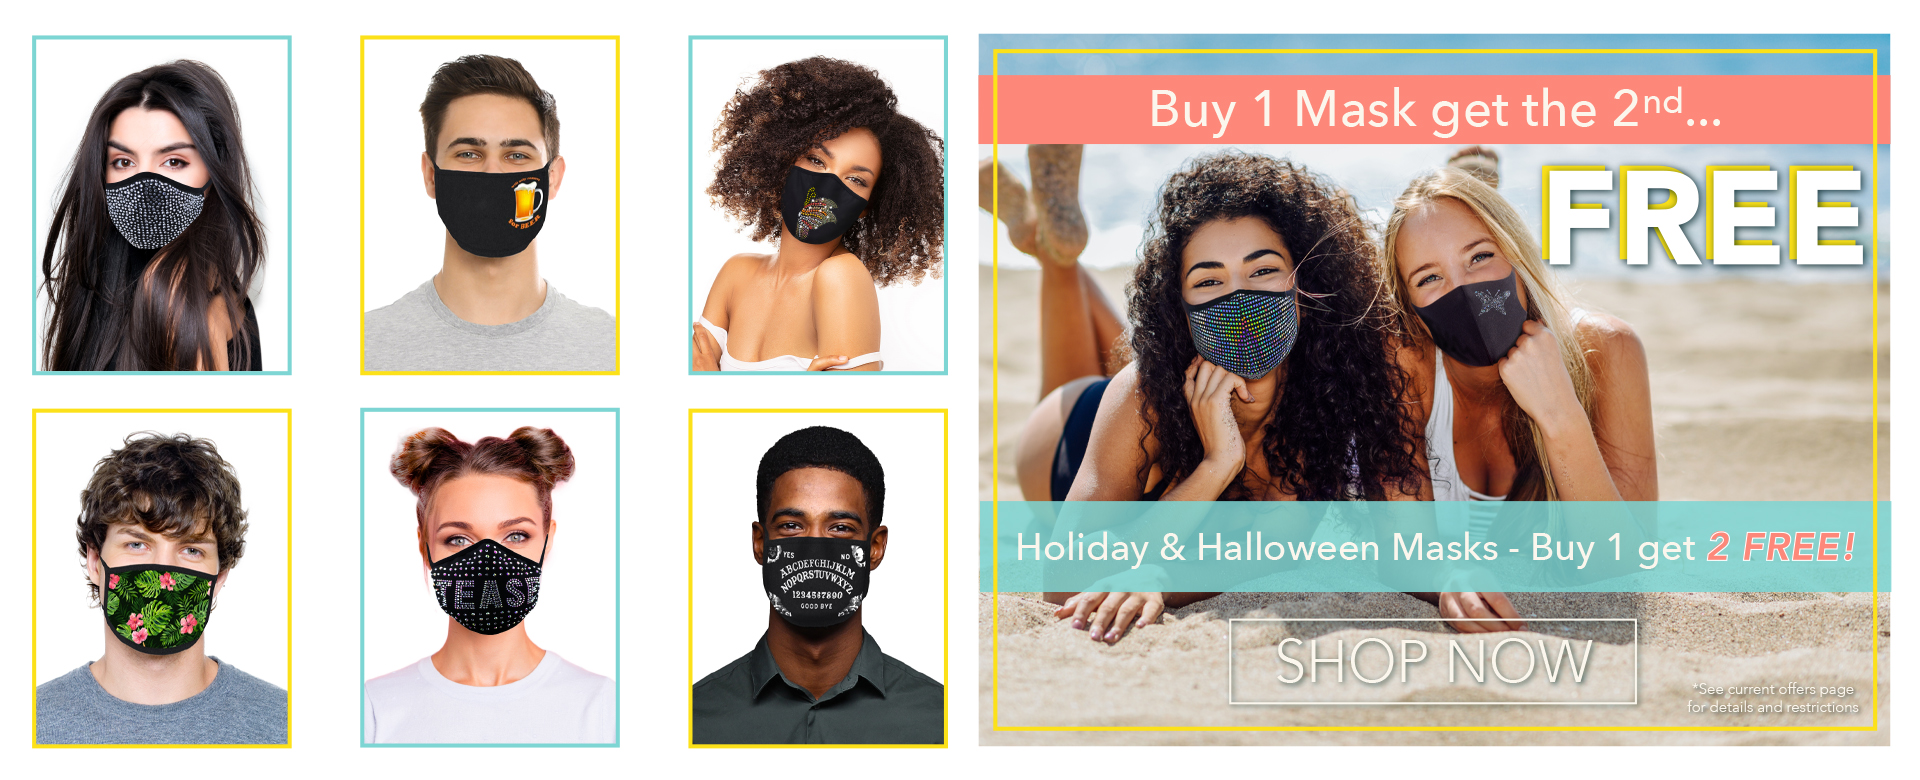 FREE! Buy 1 Mask, get the 2nd FREE! - Holiday & Halloween Masks - Buy 1 get 2 FREE! Shop Now!